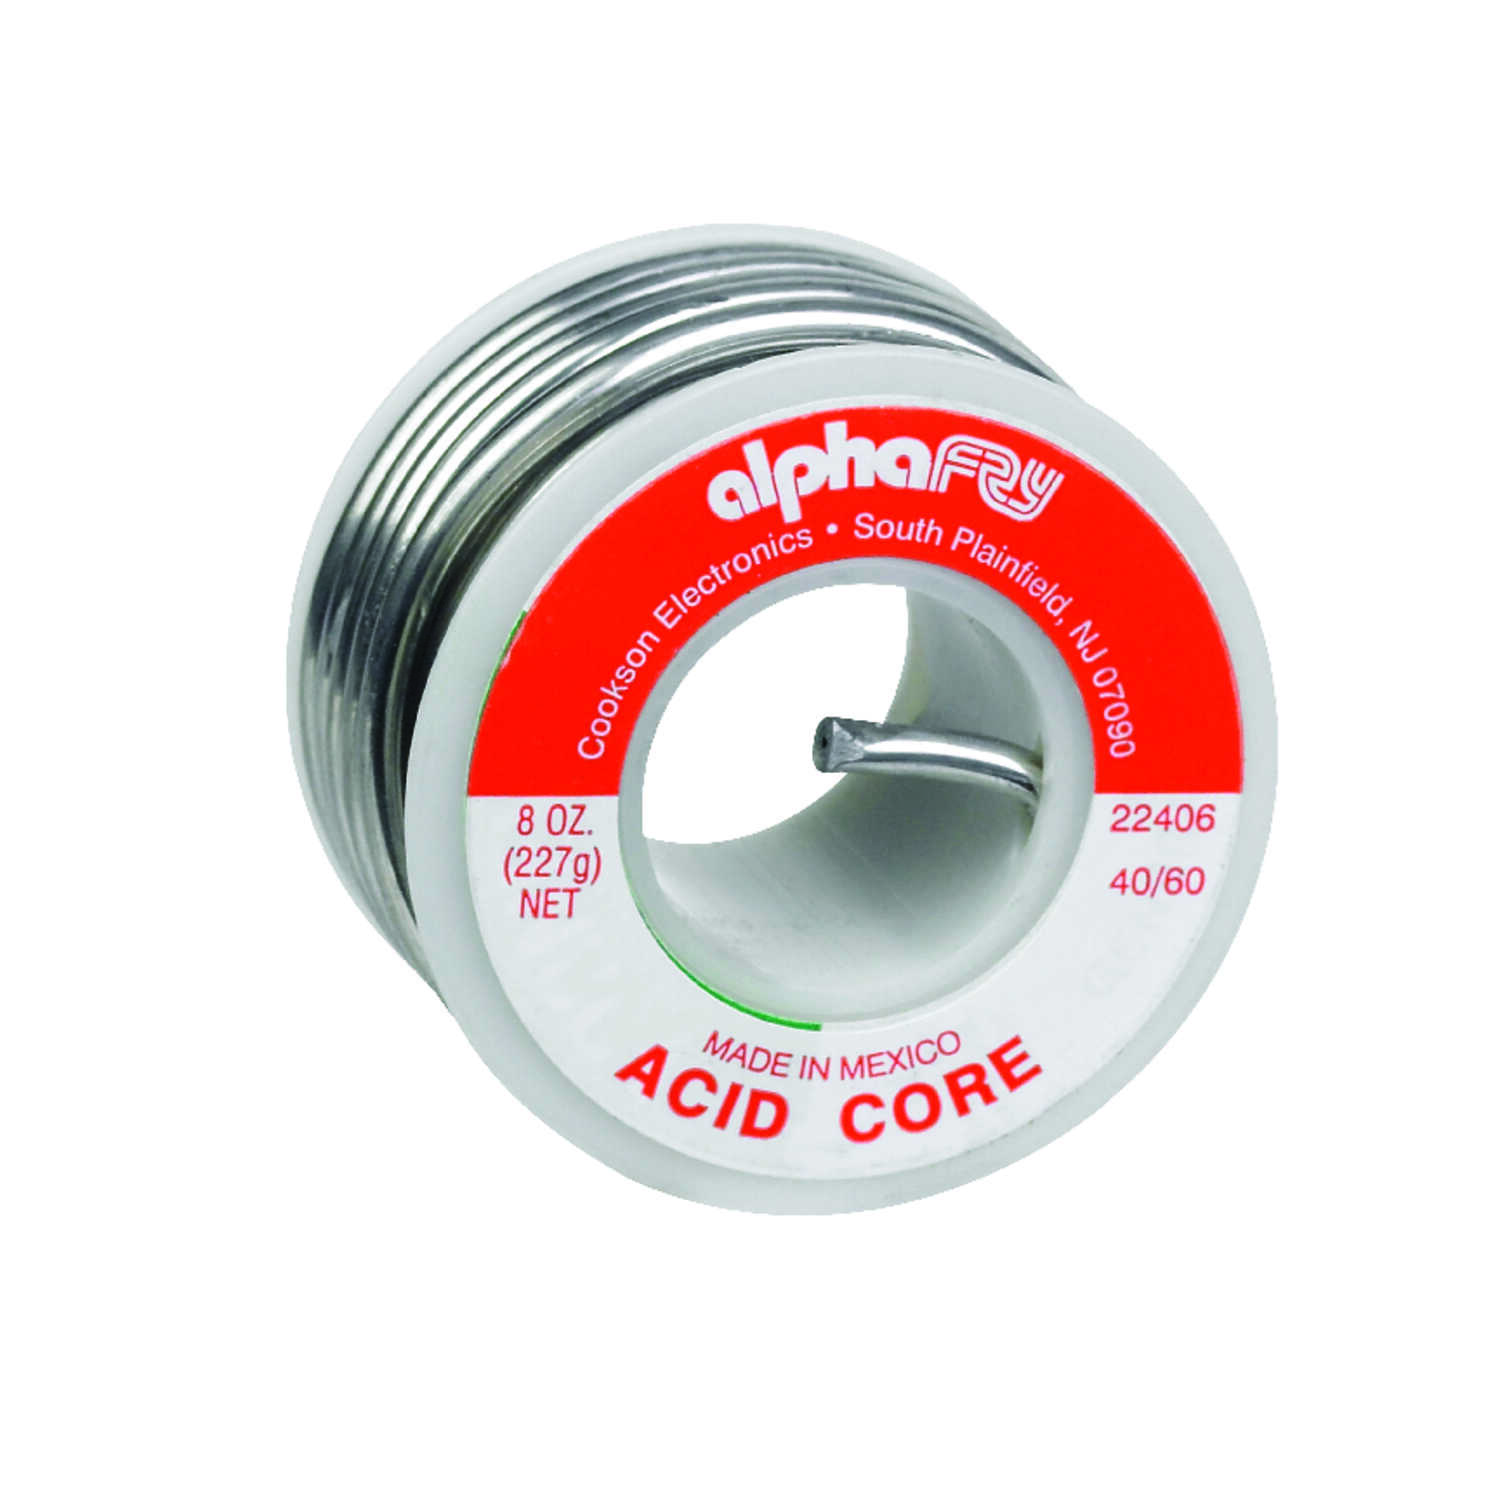 Alpha Fry  8 oz. Acid Core Solder  0.125 in. Dia. Tin / Lead  40/60